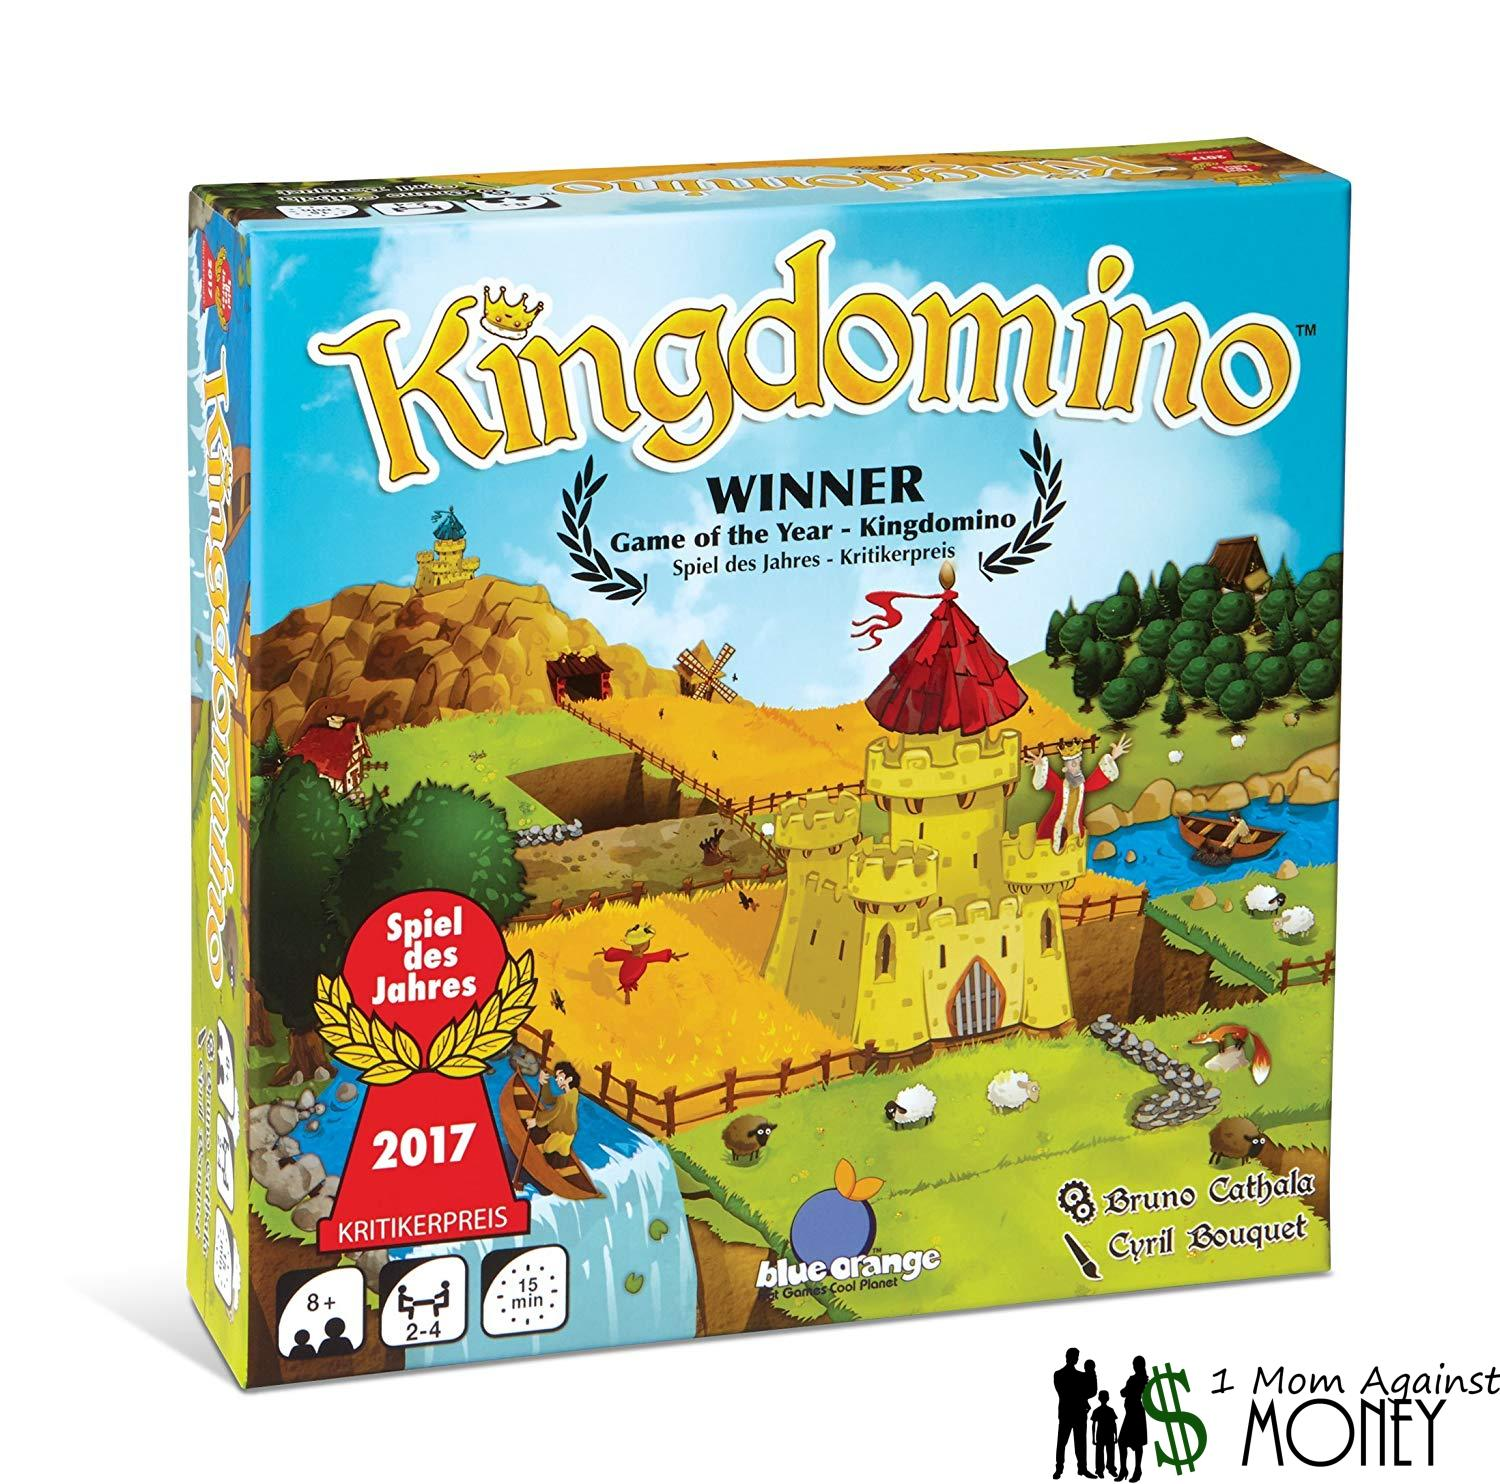 Kingdomino: Family Board Game Recommendation